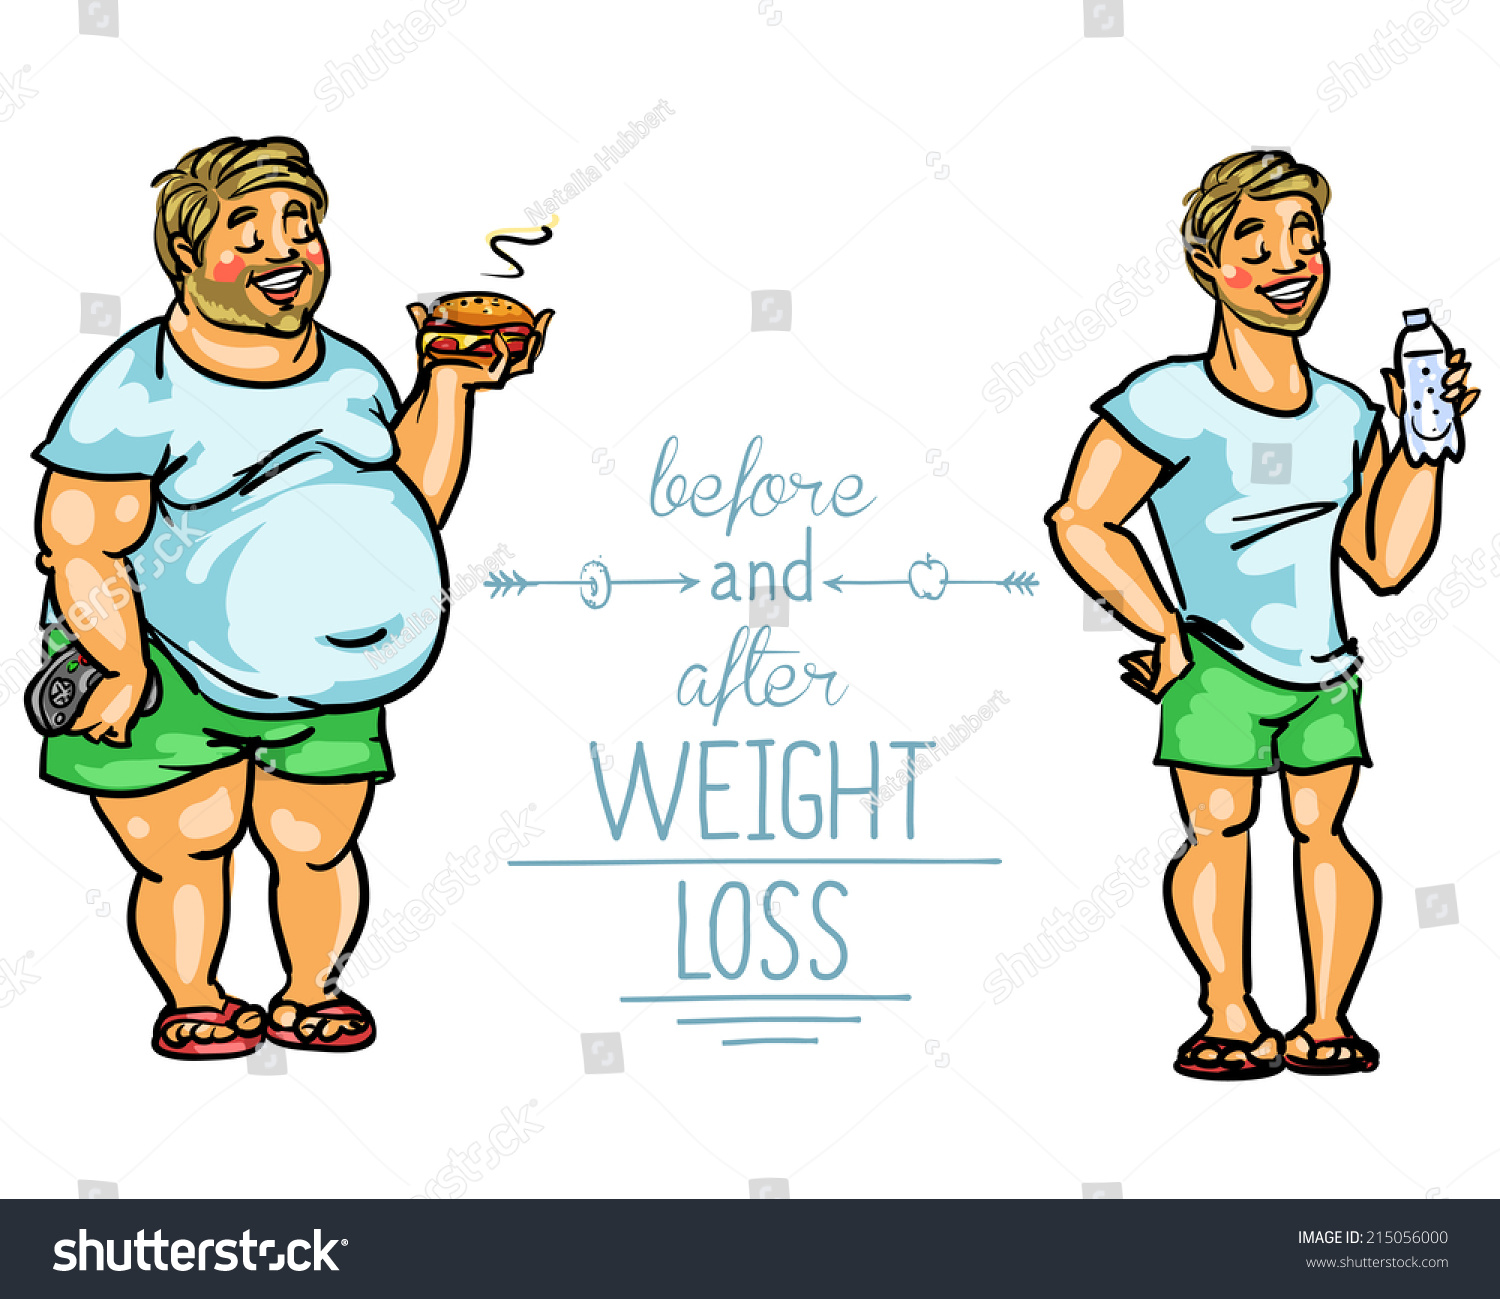 Man Before After Weight Loss Cartoon Stock Vector Royalty Free 215056000